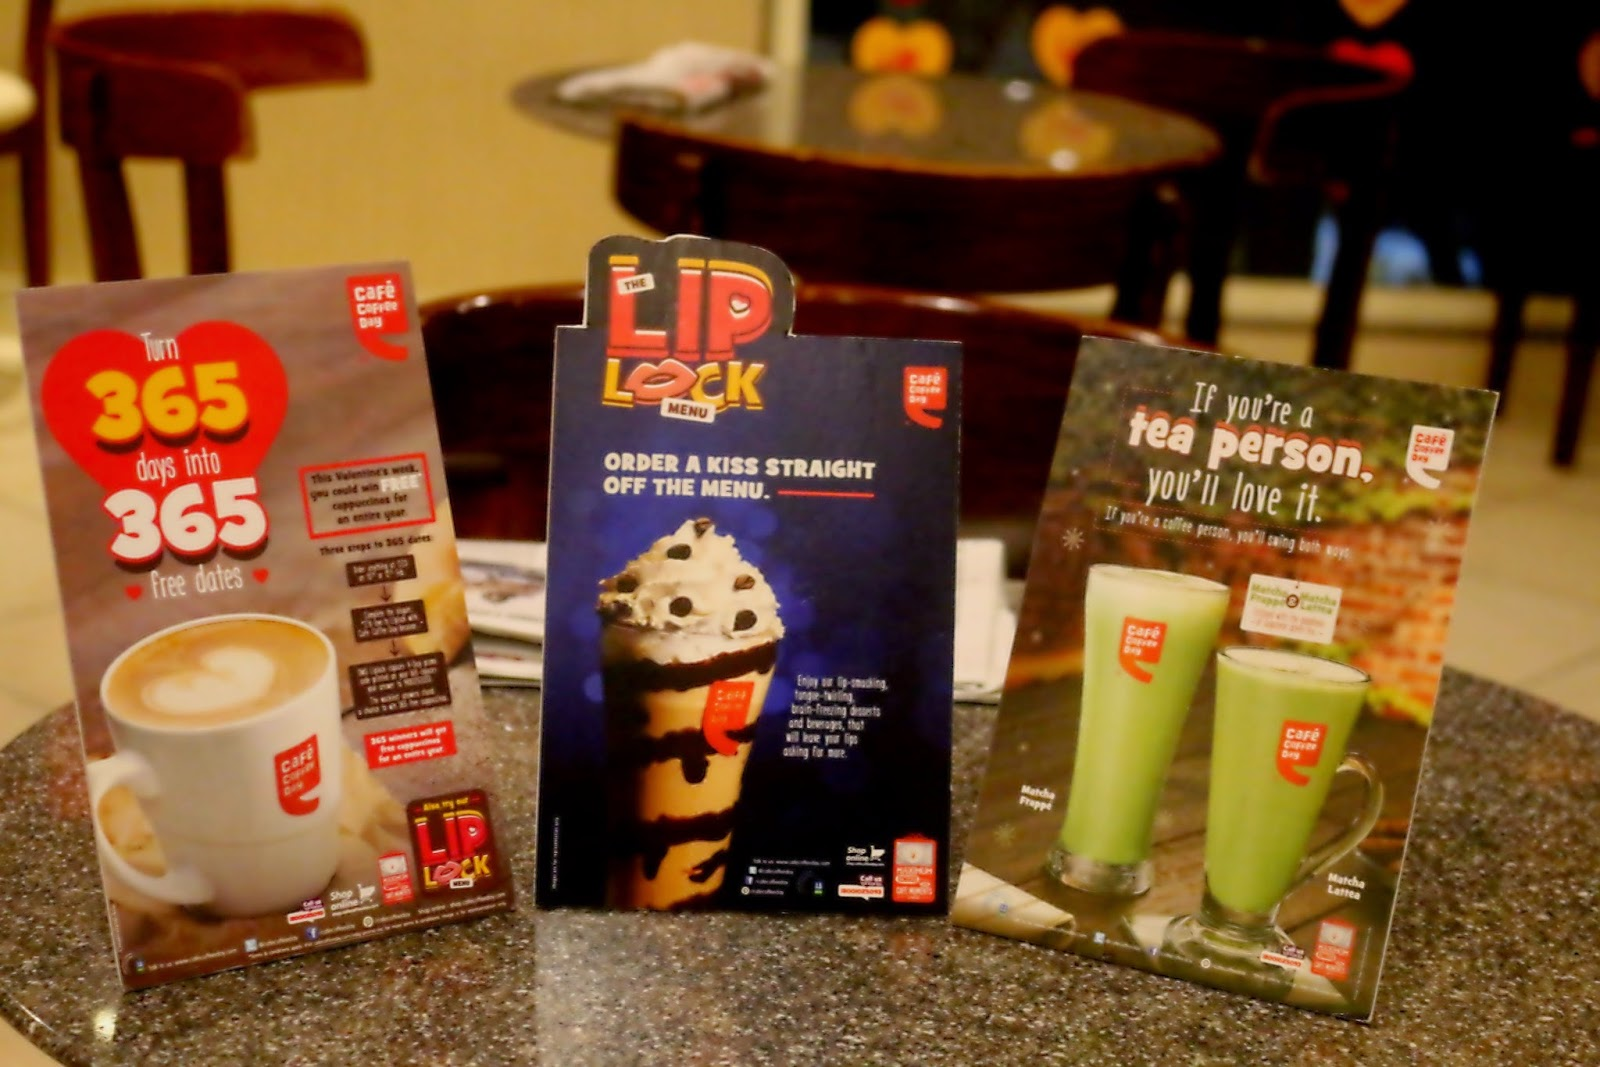 Food Desserts And Pastries In Addition Merchandise Such As Coffee Powders Cookies Mugs Filters Etc Are Available At All Day Cafes